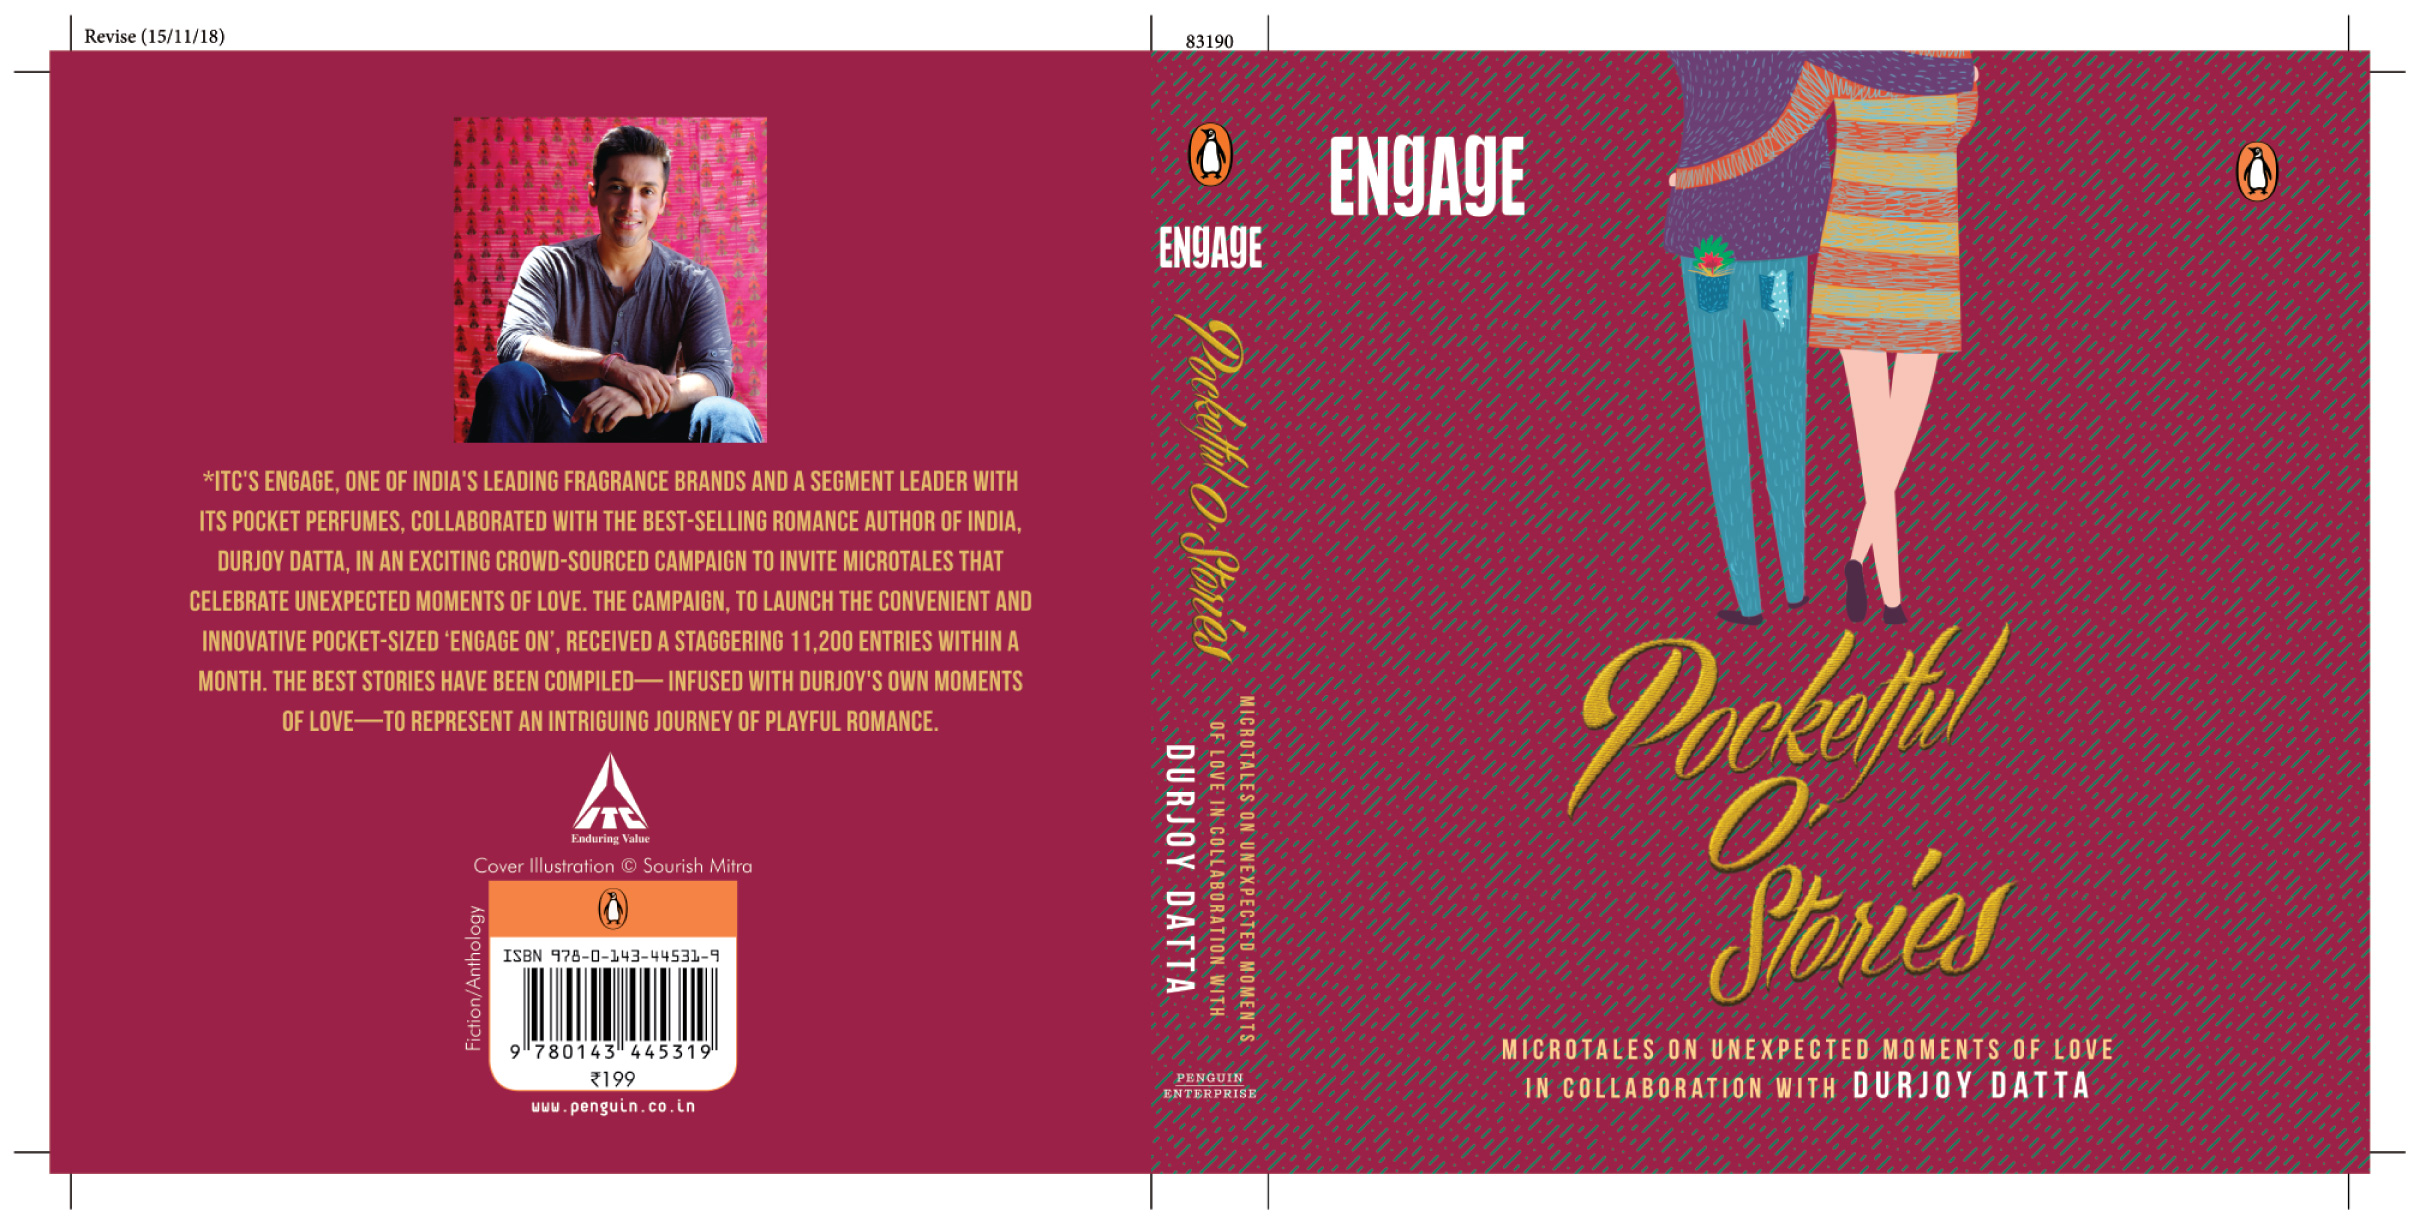 Book Launch - Pocketful of Stories by Durjoy Datta